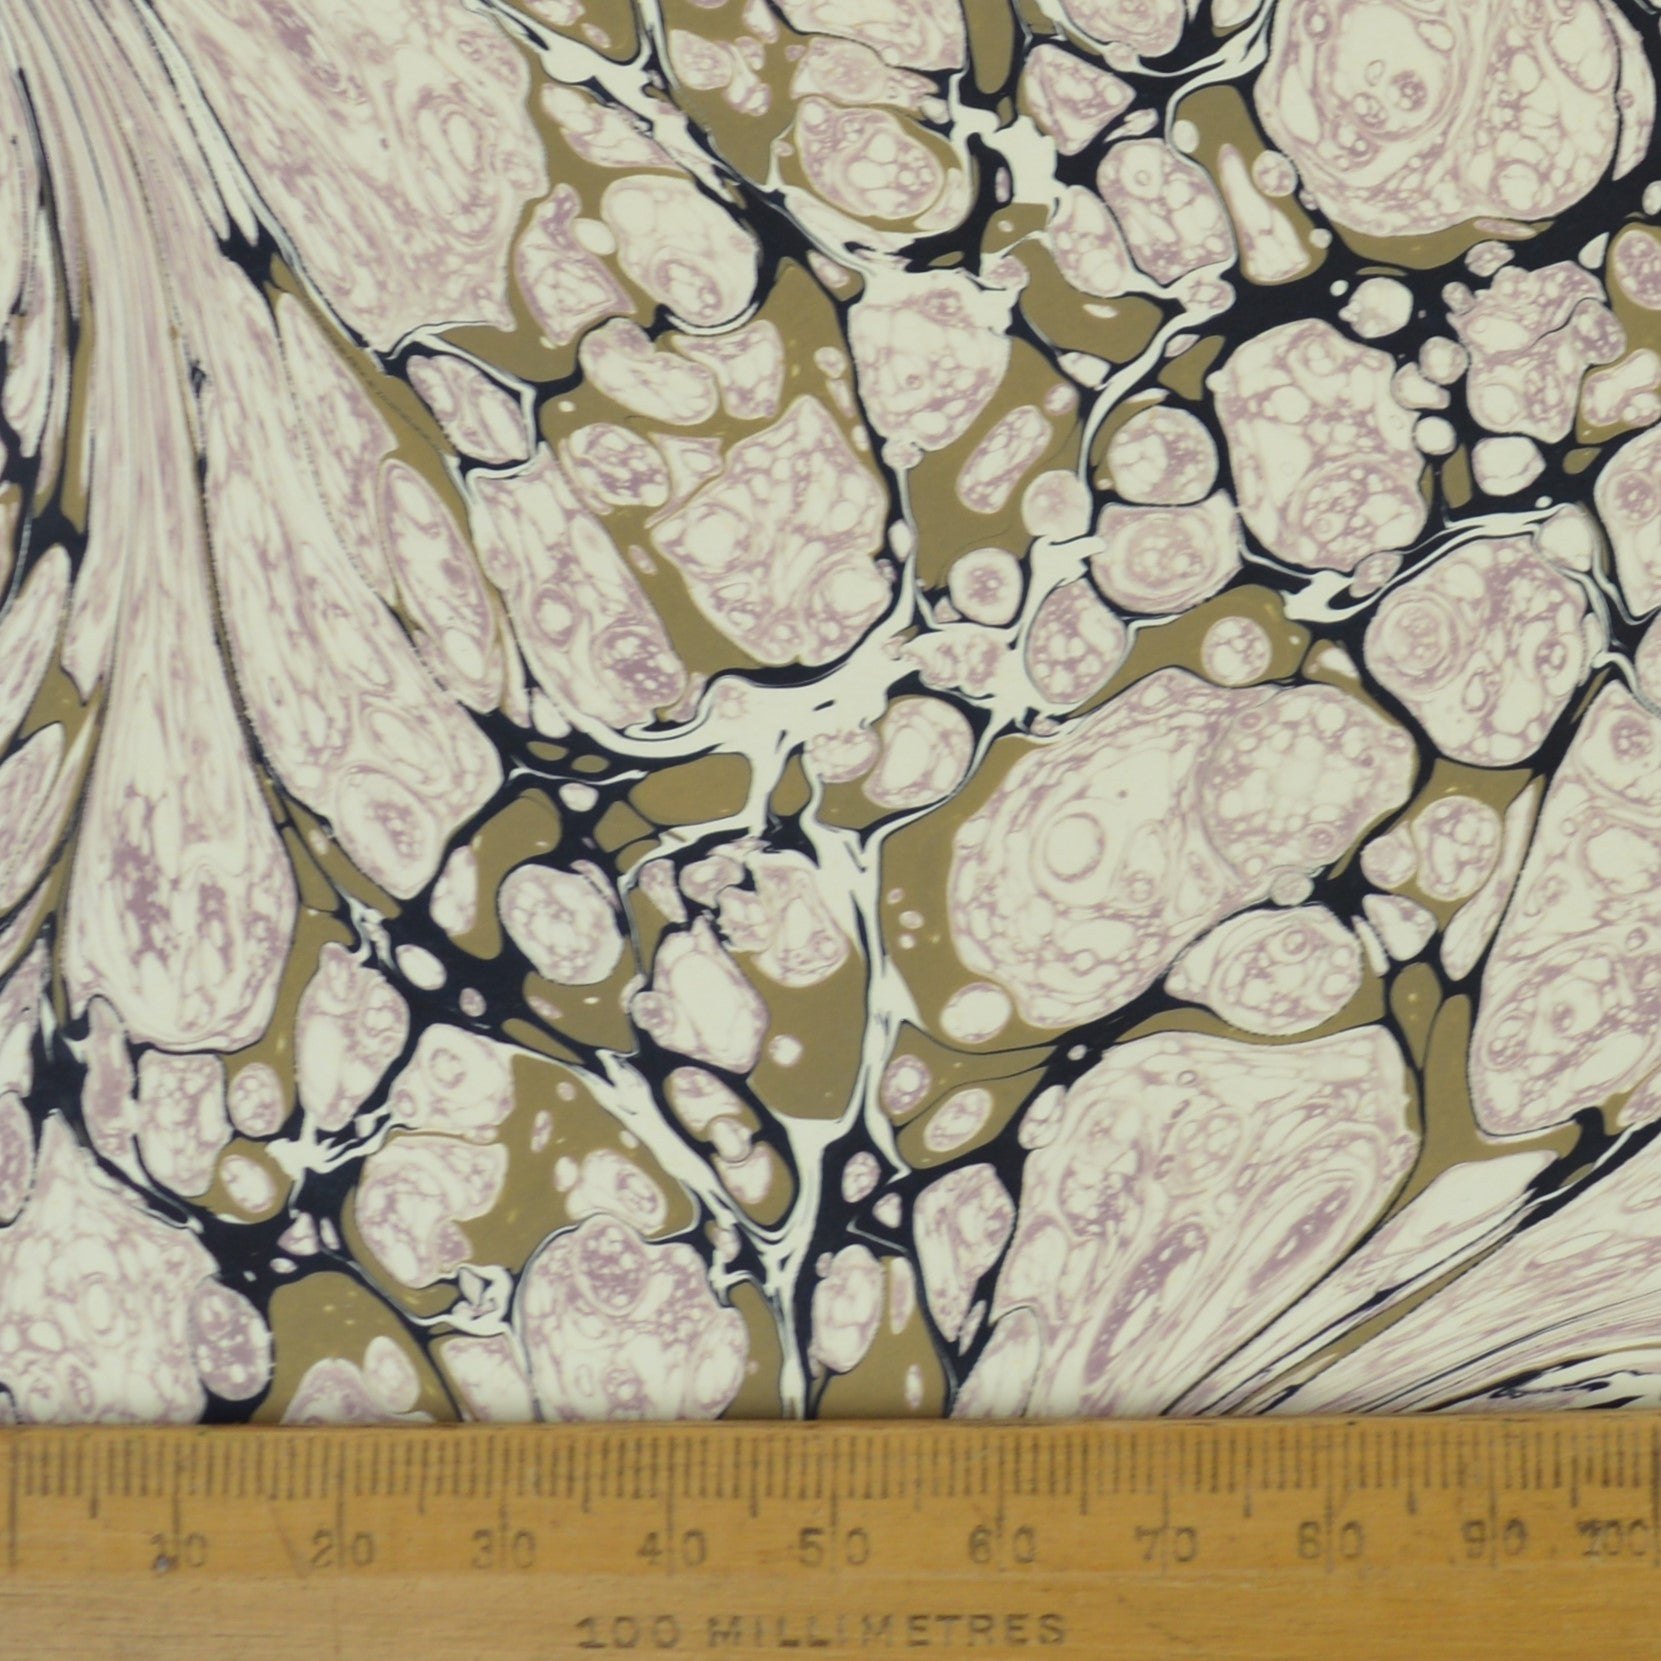 Munro and Kerr pretty pink and stone marbled paper for a lampshade